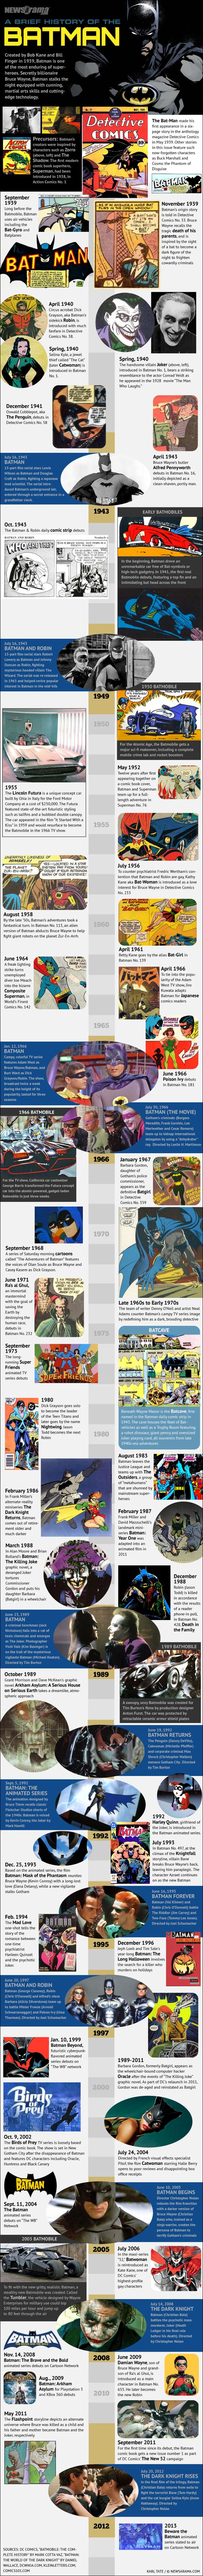 History of the Comics